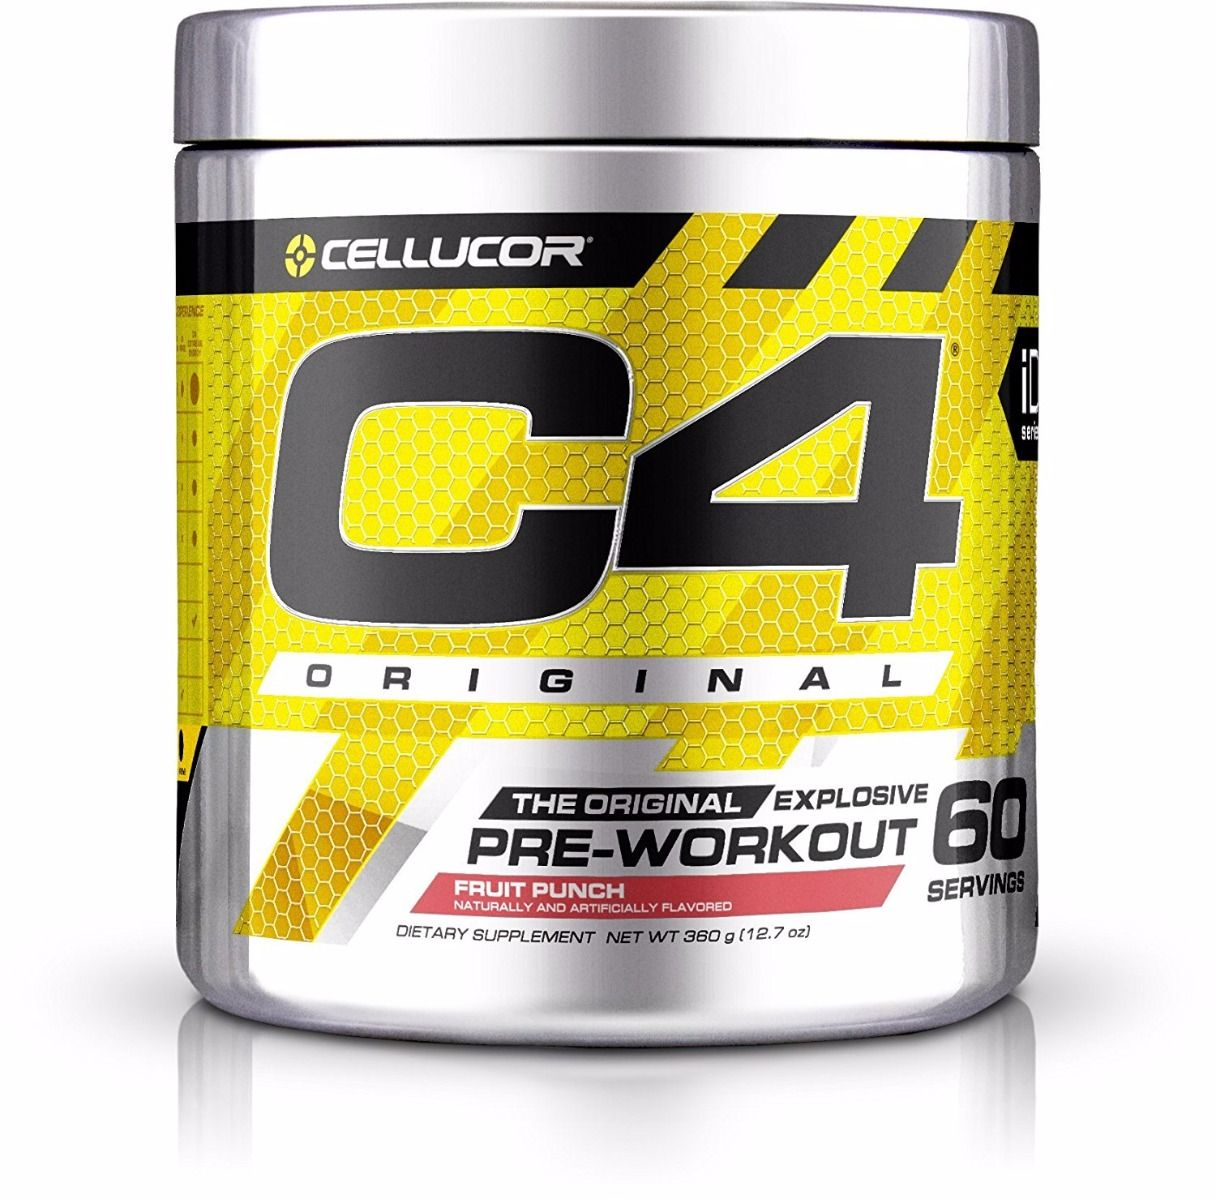 Cellucor C4 Original 390 g - cherry limeade